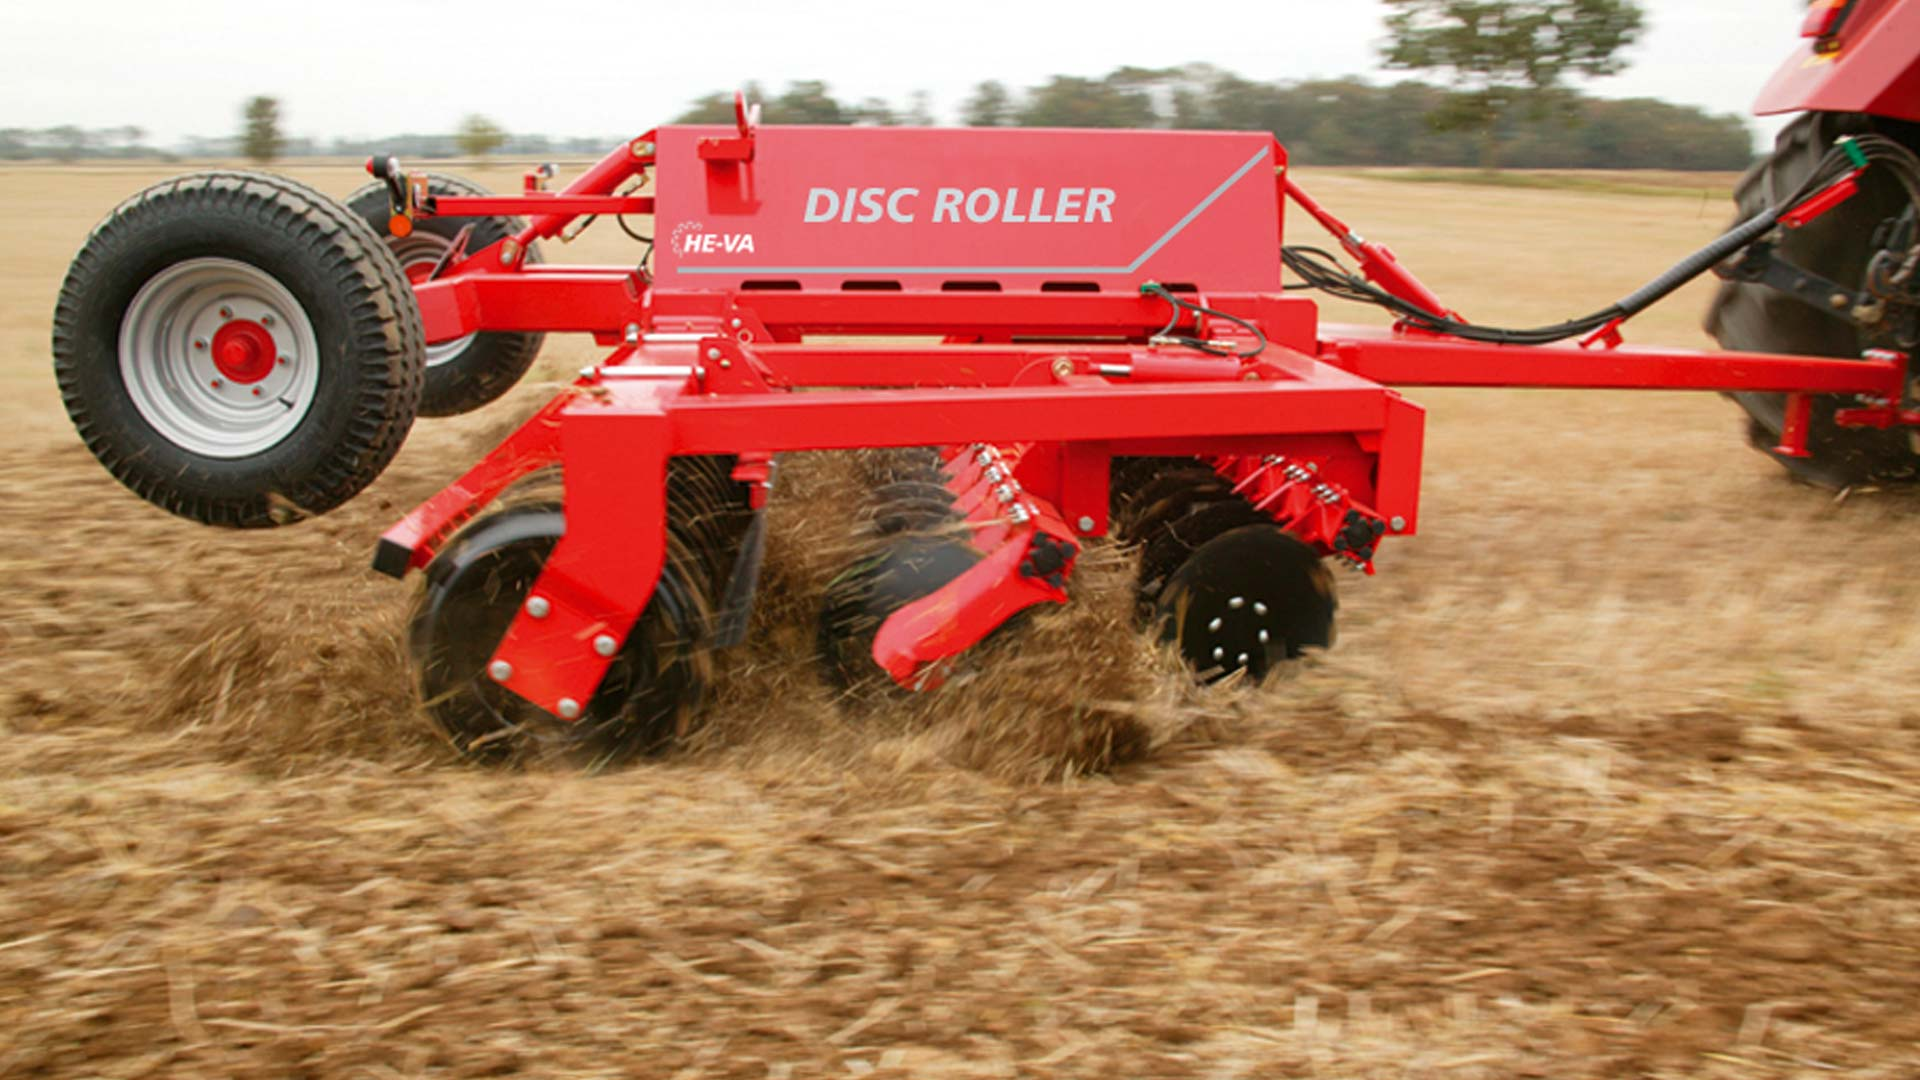 Disc-Roller Classic with 2 sections are especially suitable for medium-sized and bigger farms. The 2-section design requires more than 130 HP of the tractor in order to get maximum intersection. Disc-Roller Classic with 2 sections come in both trailed and three-point mounted models.